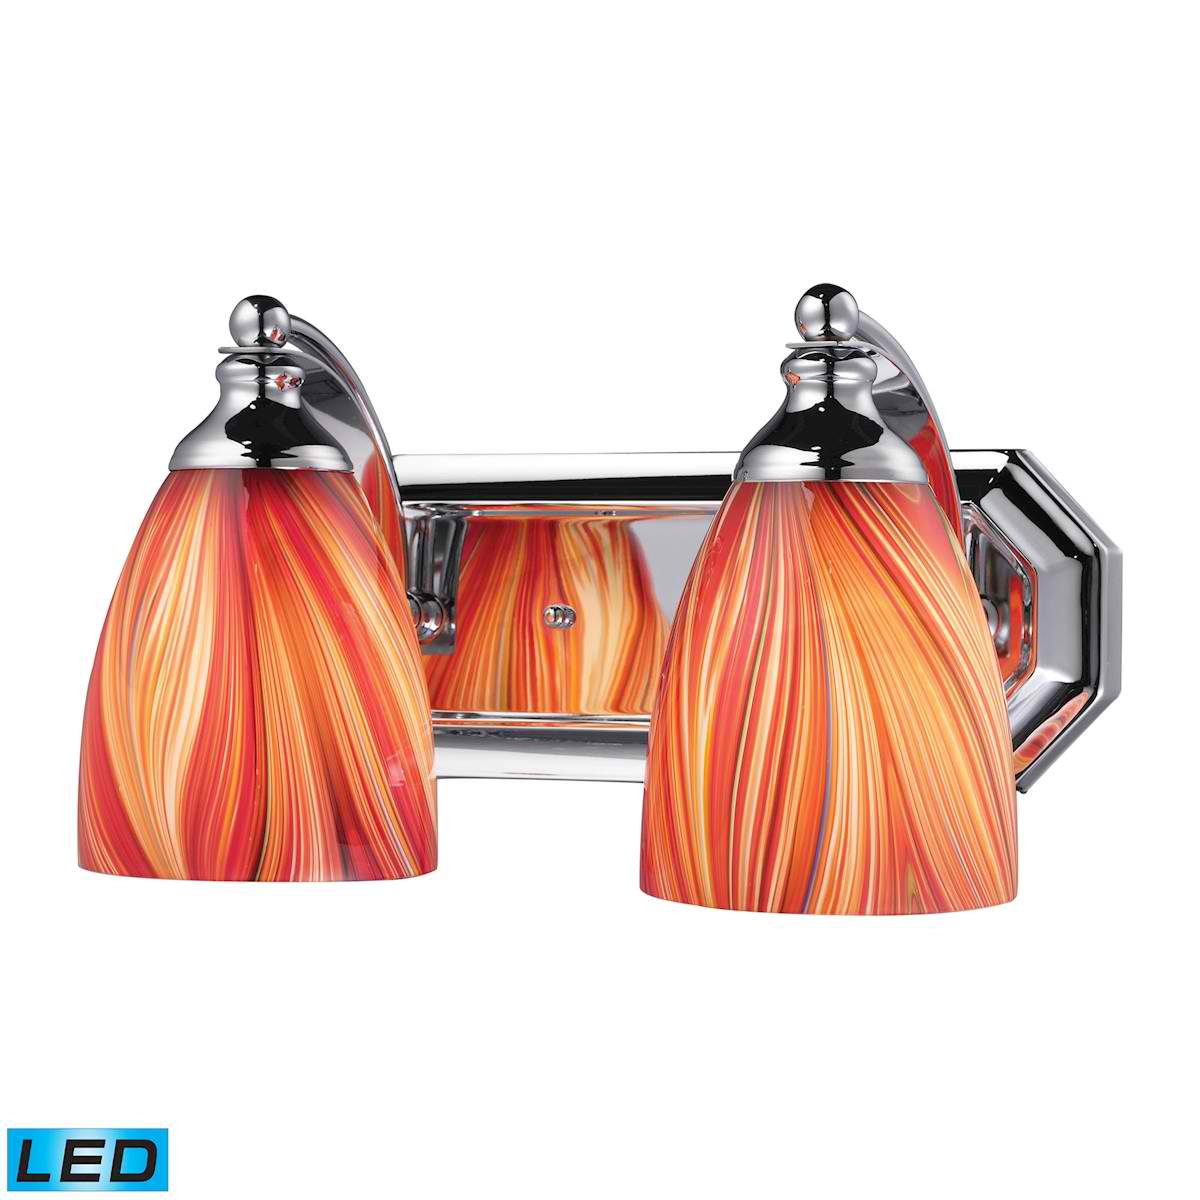 2 Light Vanity in Polished Chrome and Multi Glass - LED, 800 Lumens (1600 Lumens Total) with Full Scale